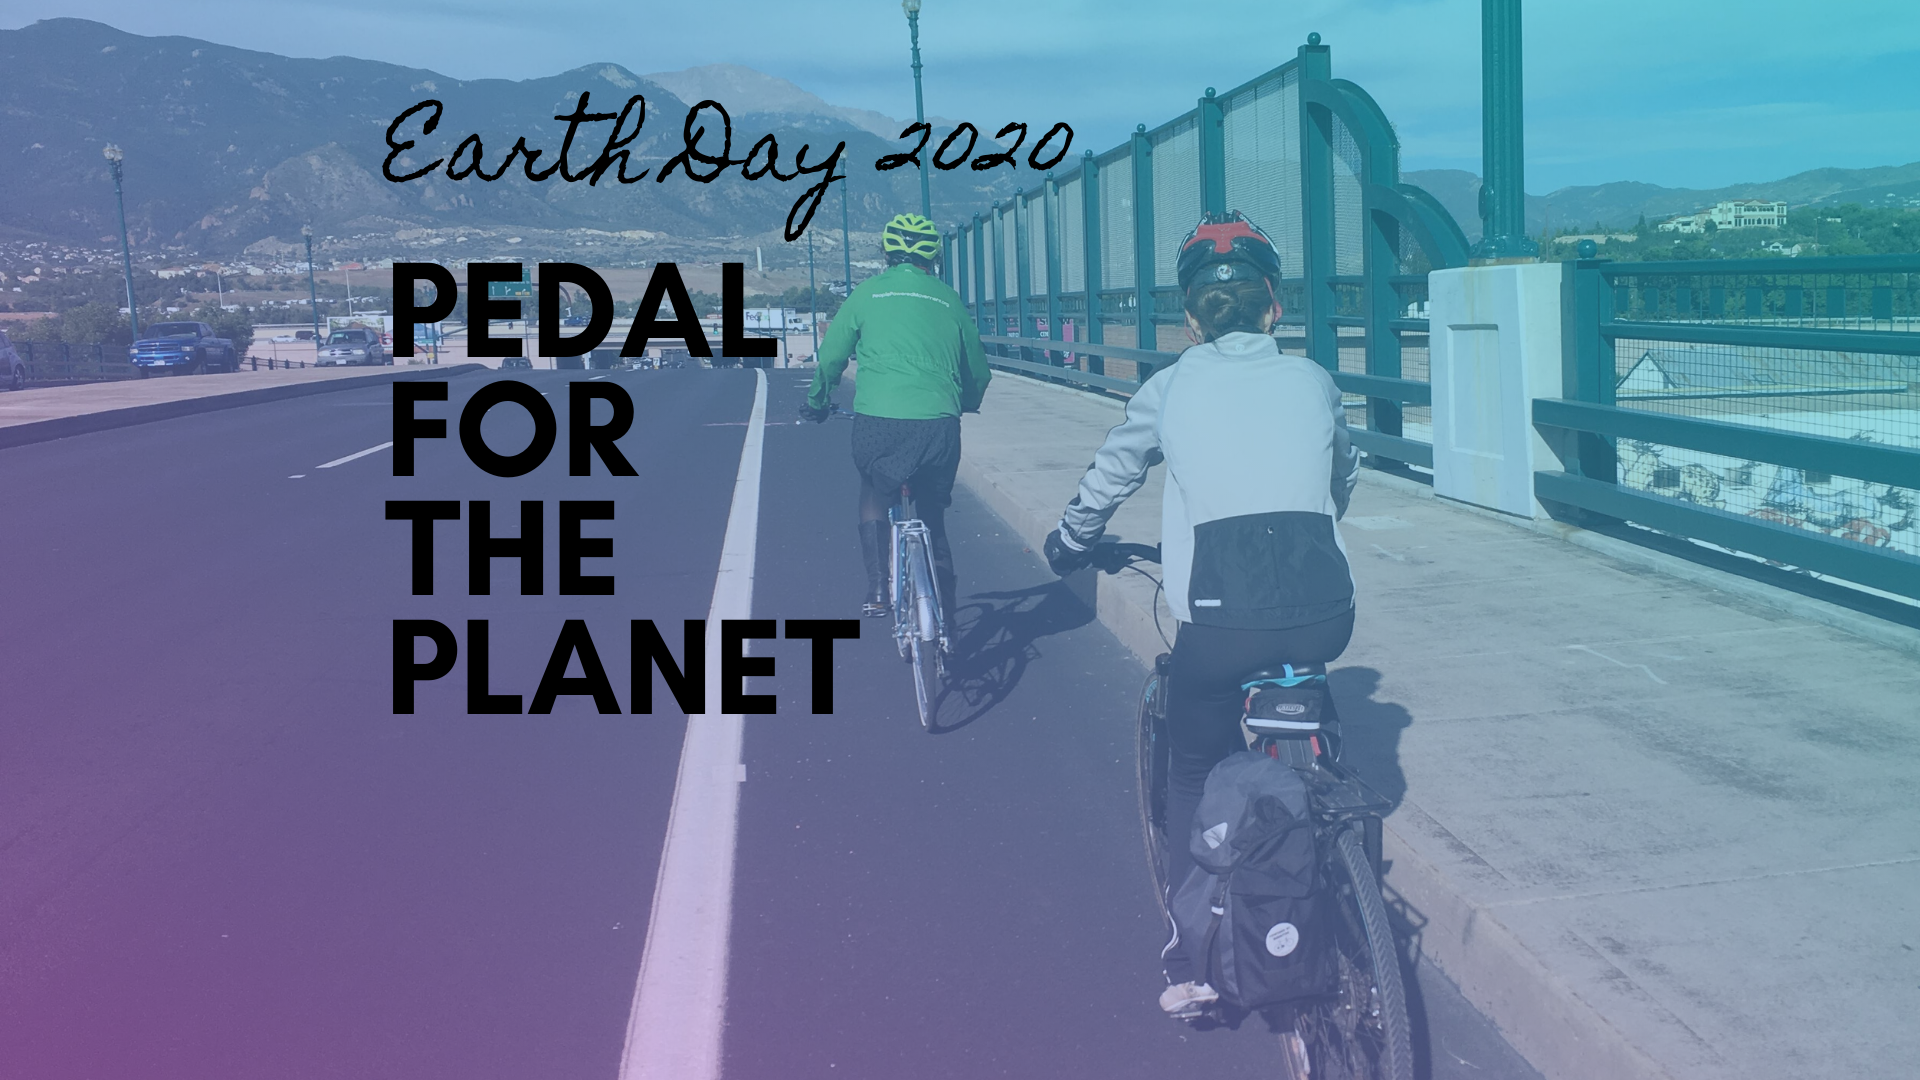 Pedal For The Planet – Earth Day 2020